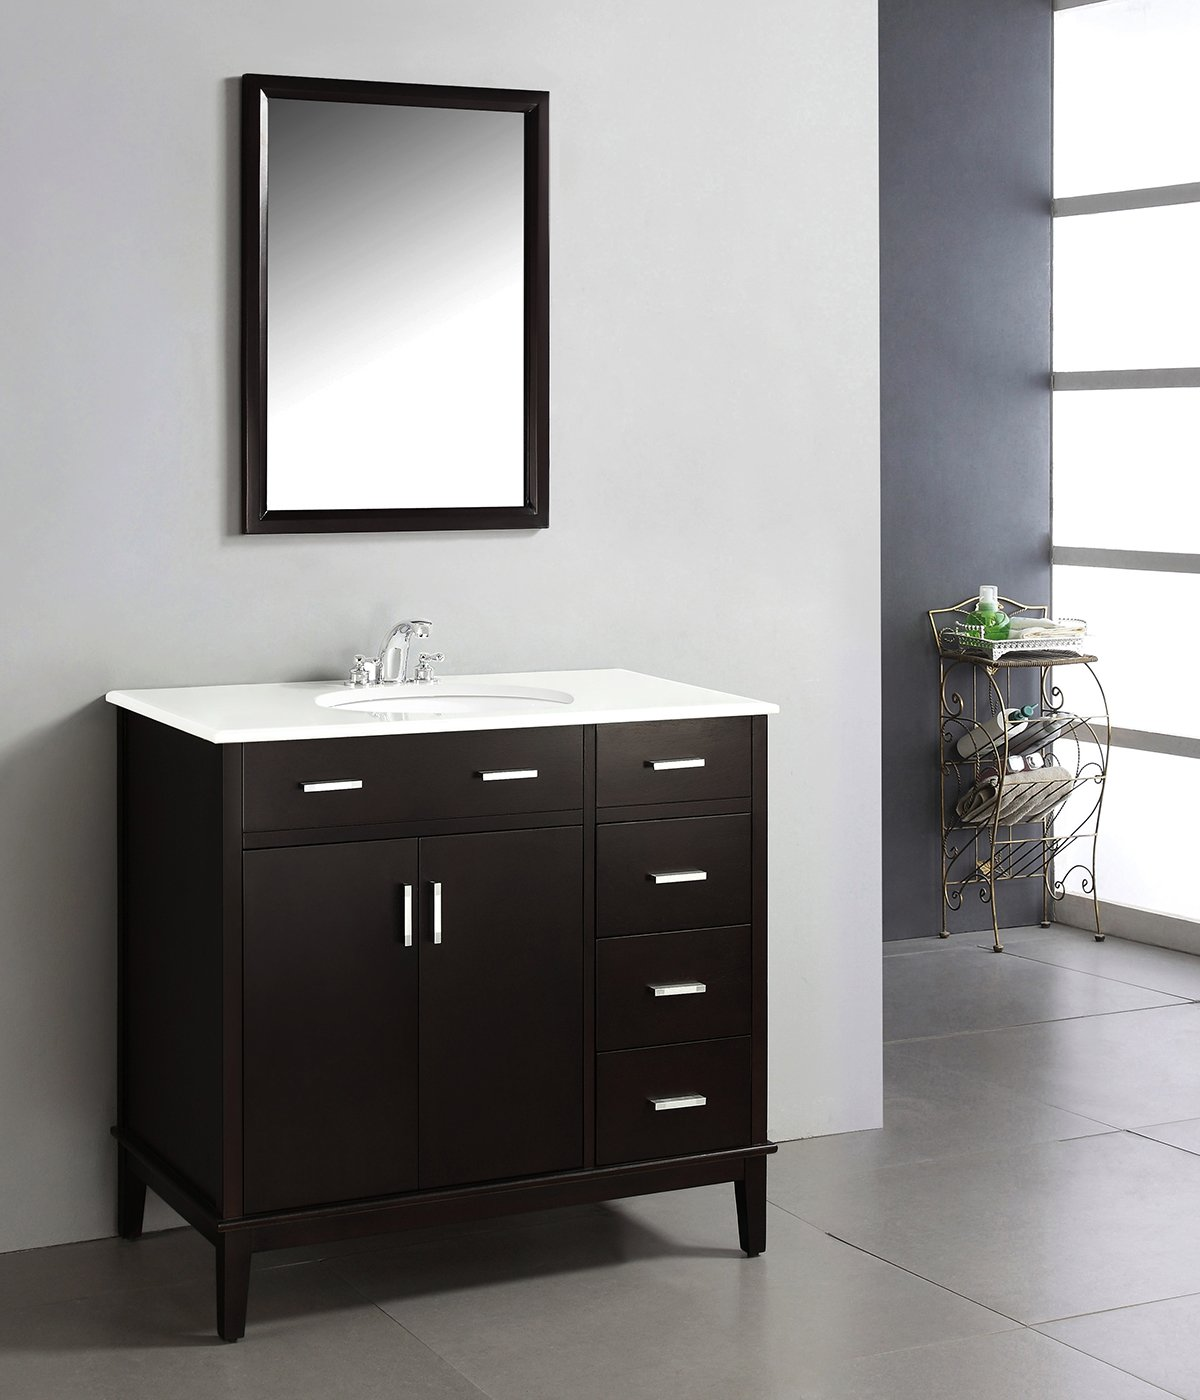 Simpli Home Urban Loft Bath Vanity With Quartz Marble Top Dark - 30 bathroom vanity without top